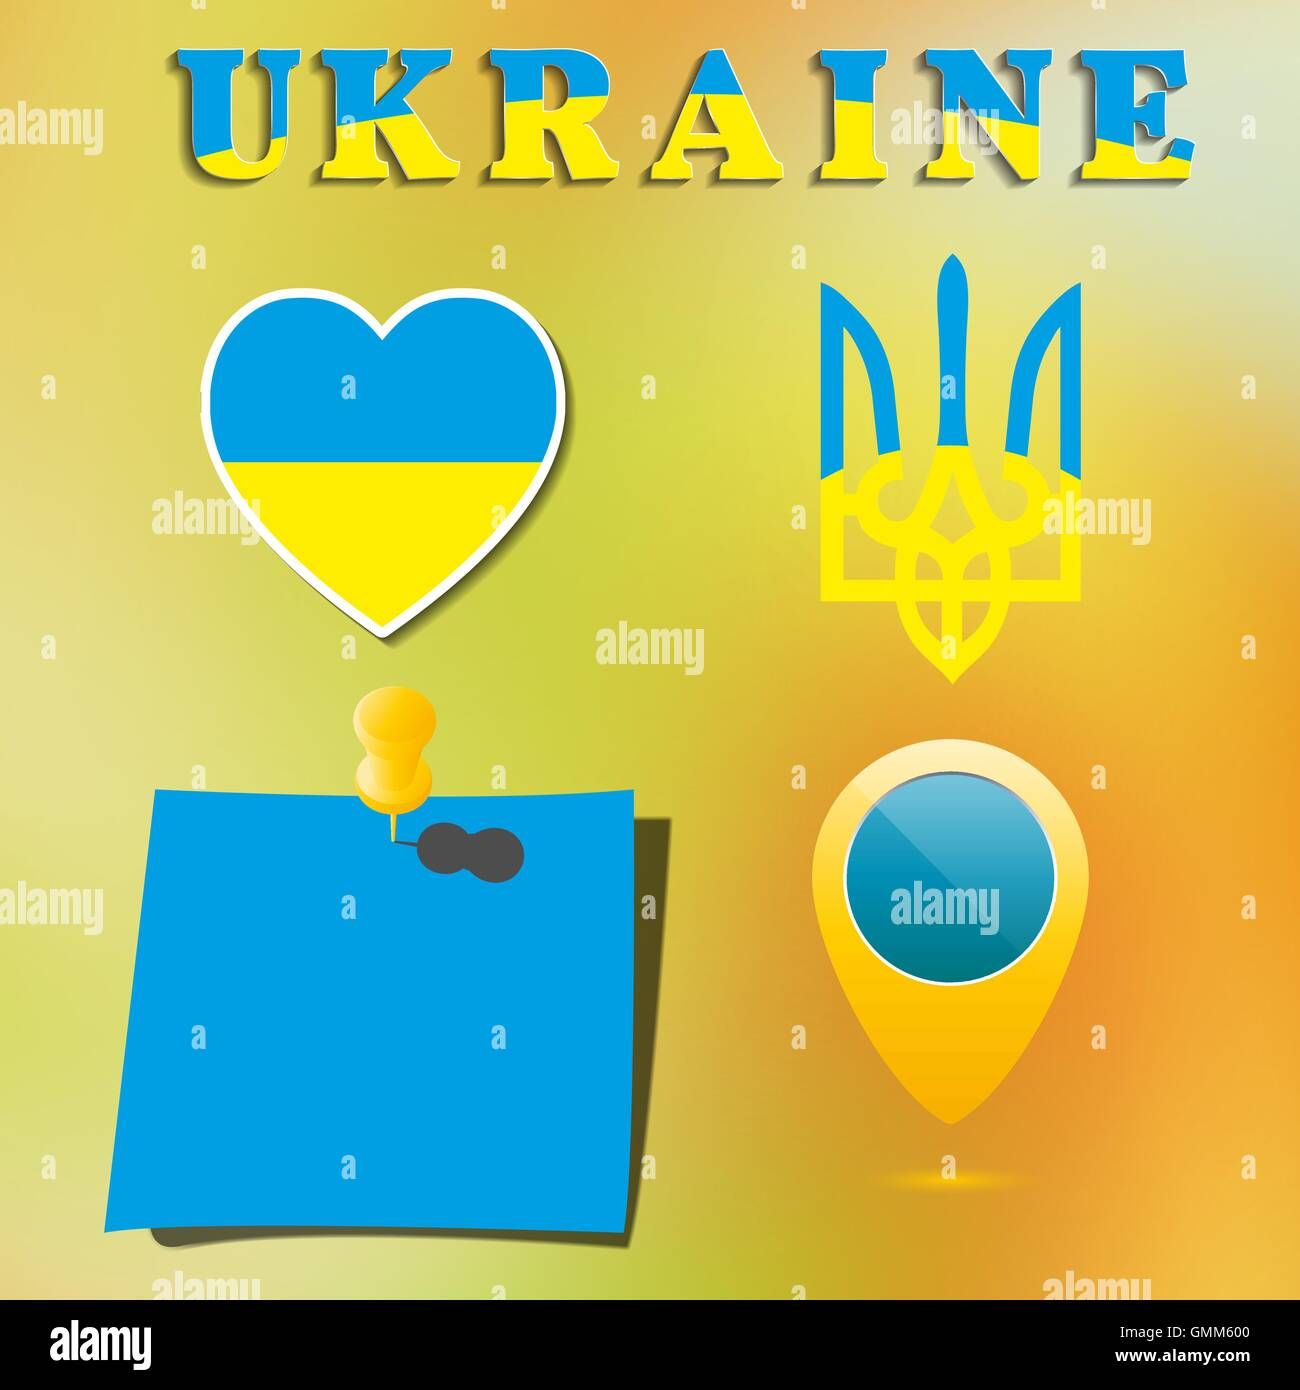 Set Ukrainian symbolism, vector illustration - Stock Image